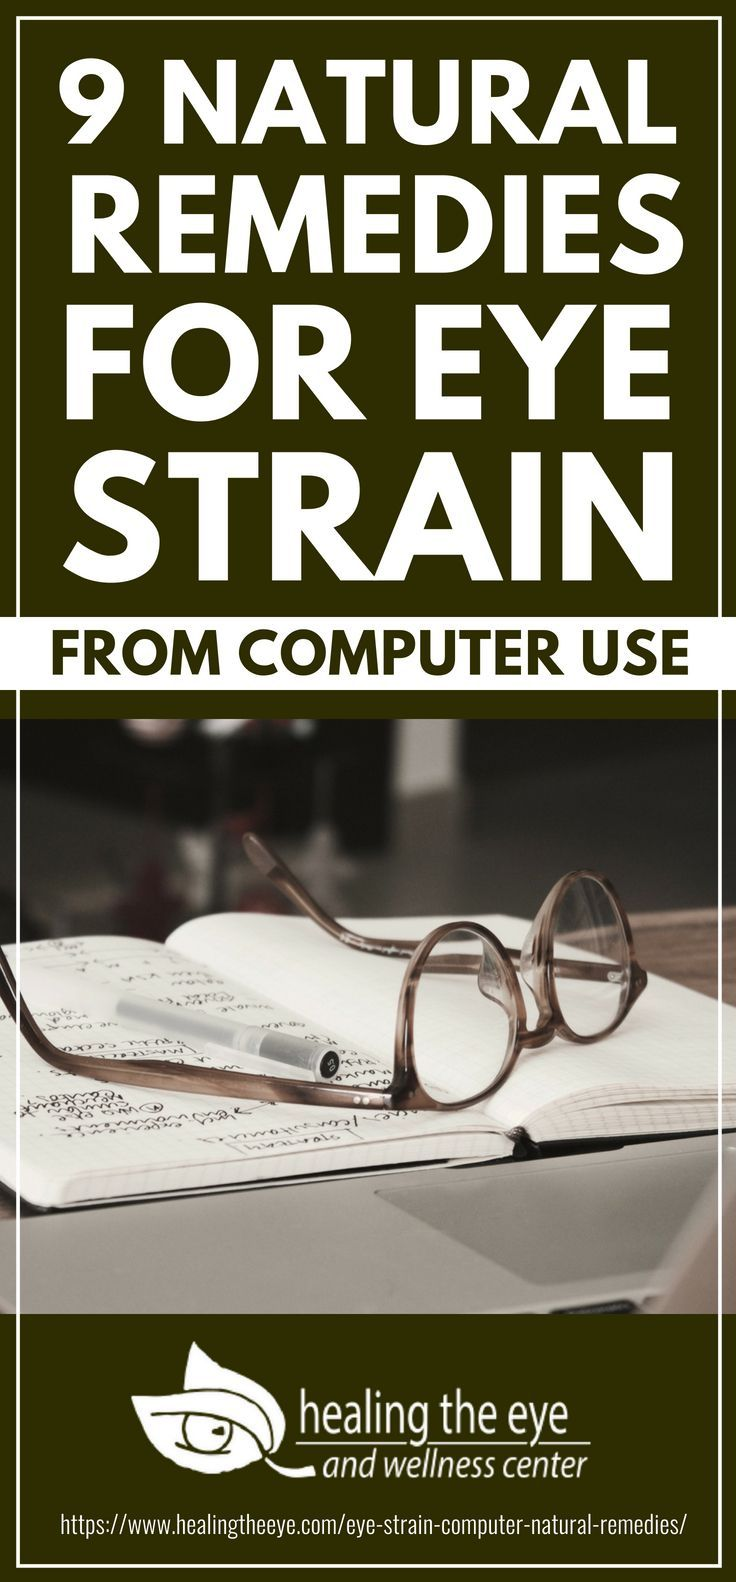 9 Natural Remedies For Eye Strain From Computer Use